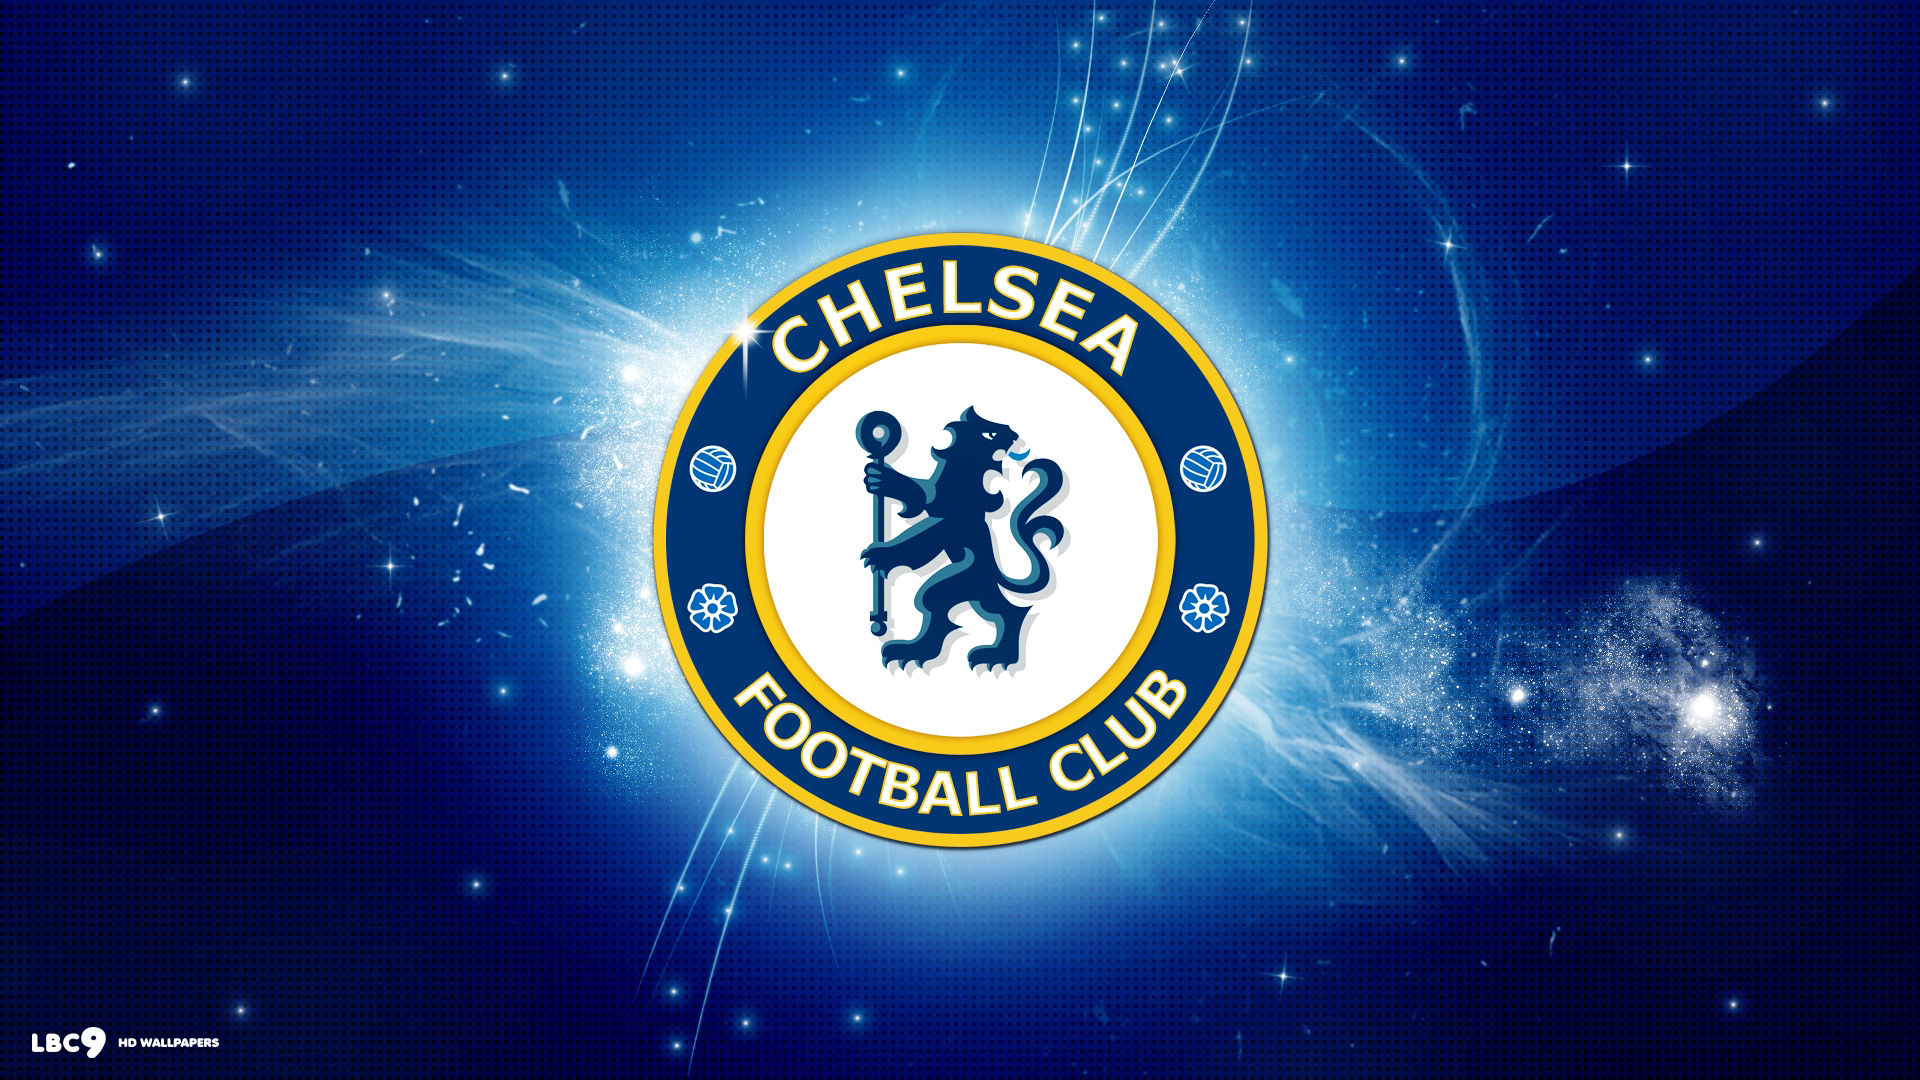 Cool Chelsea Wallpaper 25403 1920x1080 px